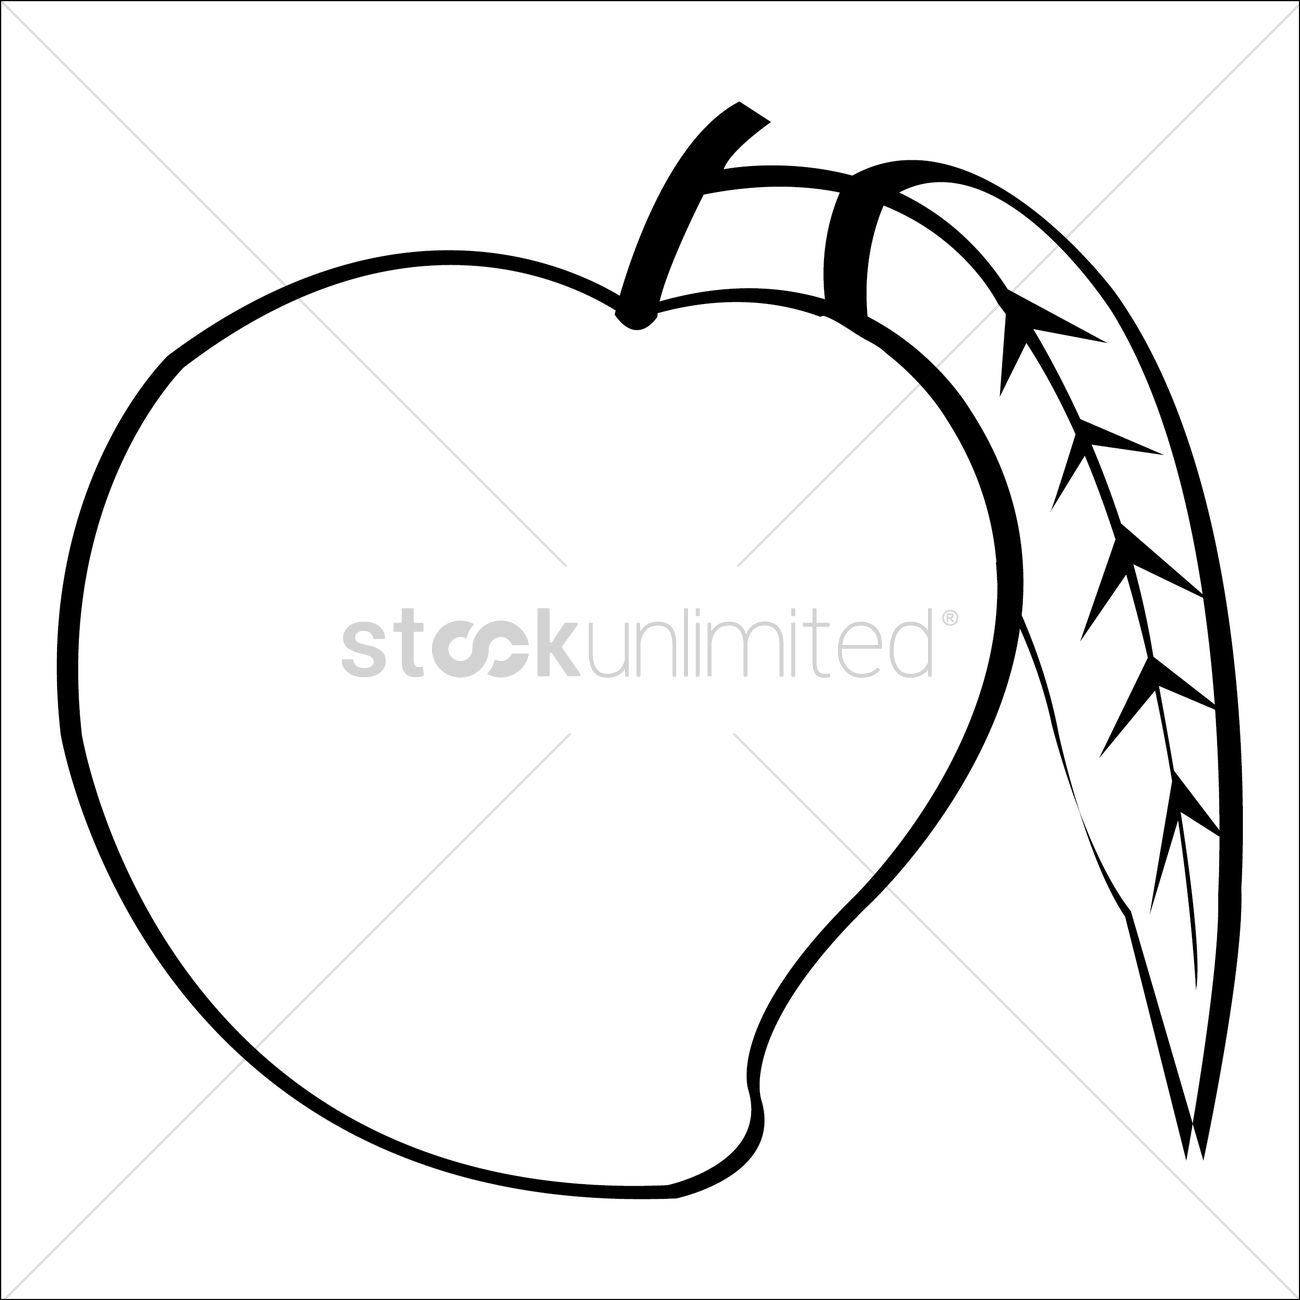 coloring mango outline images the best free mango drawing images download from 349 free outline images mango coloring